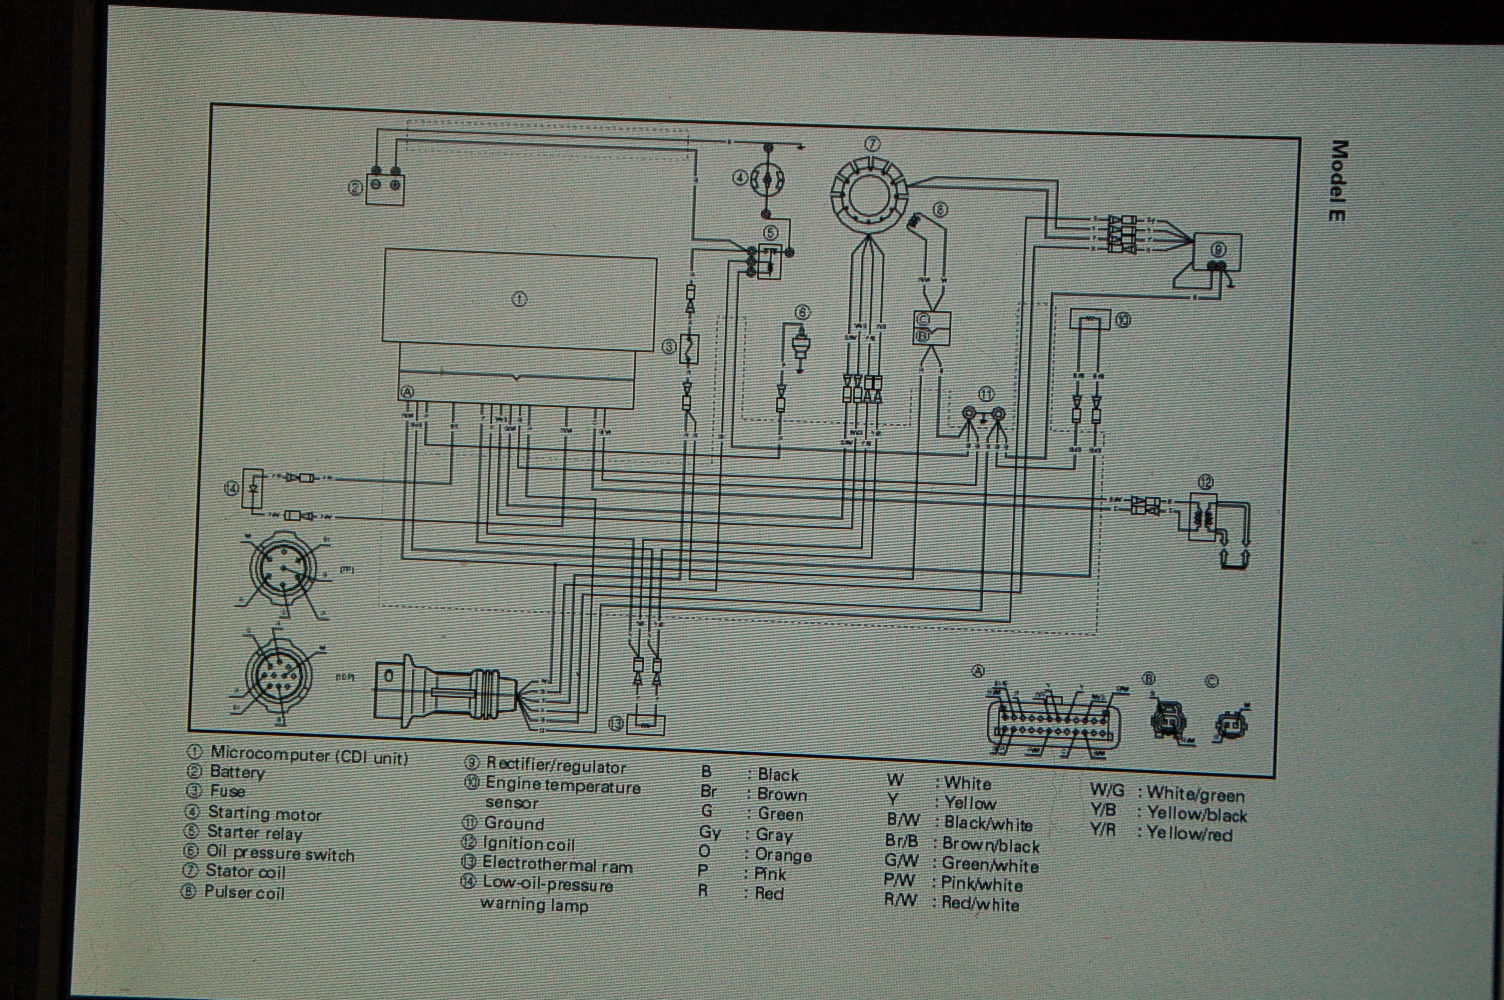 hight resolution of 30 hp yamaha outboard wiring wiring diagram expert 30 hp yamaha outboard wiring diagram 30 hp yamaha outboard wiring